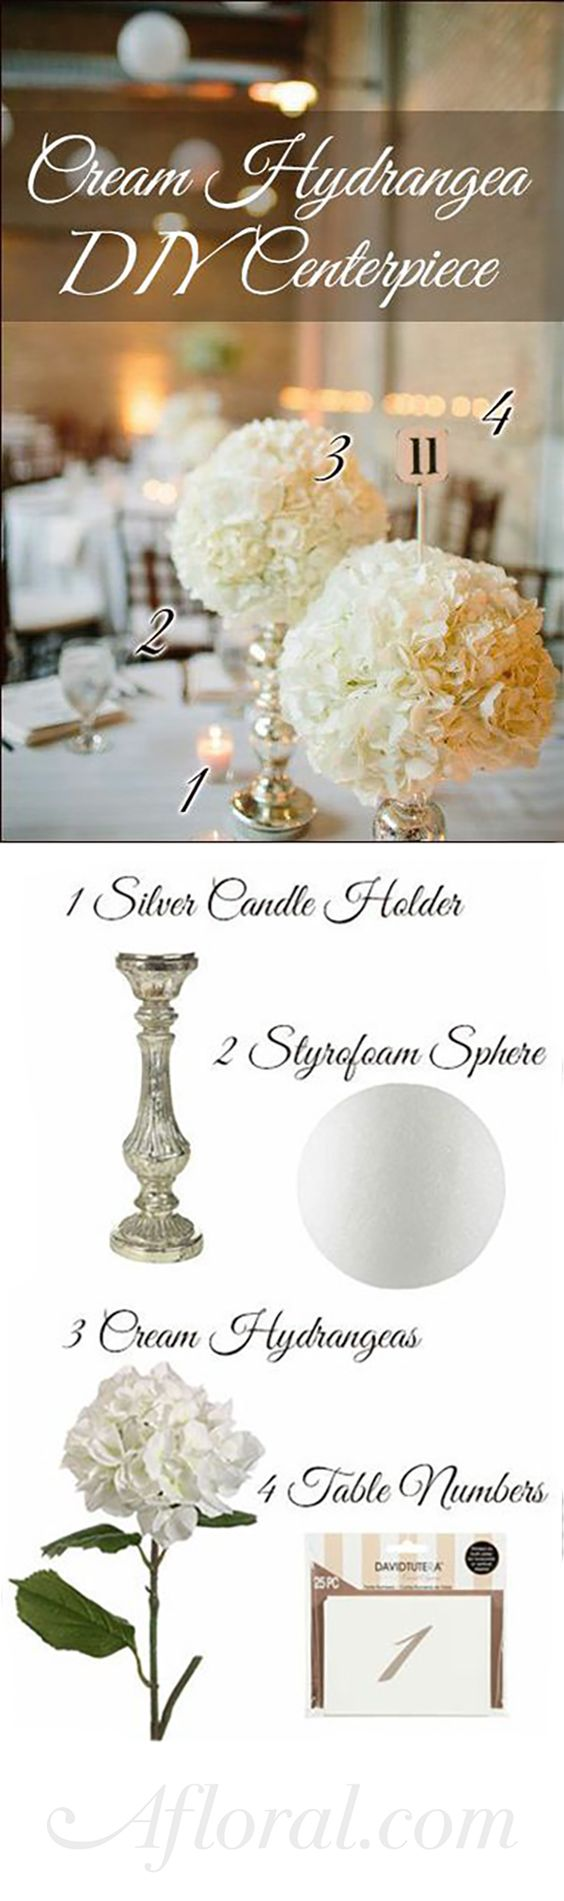 Affordable wedding centerpieces original ideas tips diys diy hydrangea centerpiece ideas for your wedding reception solutioingenieria Image collections